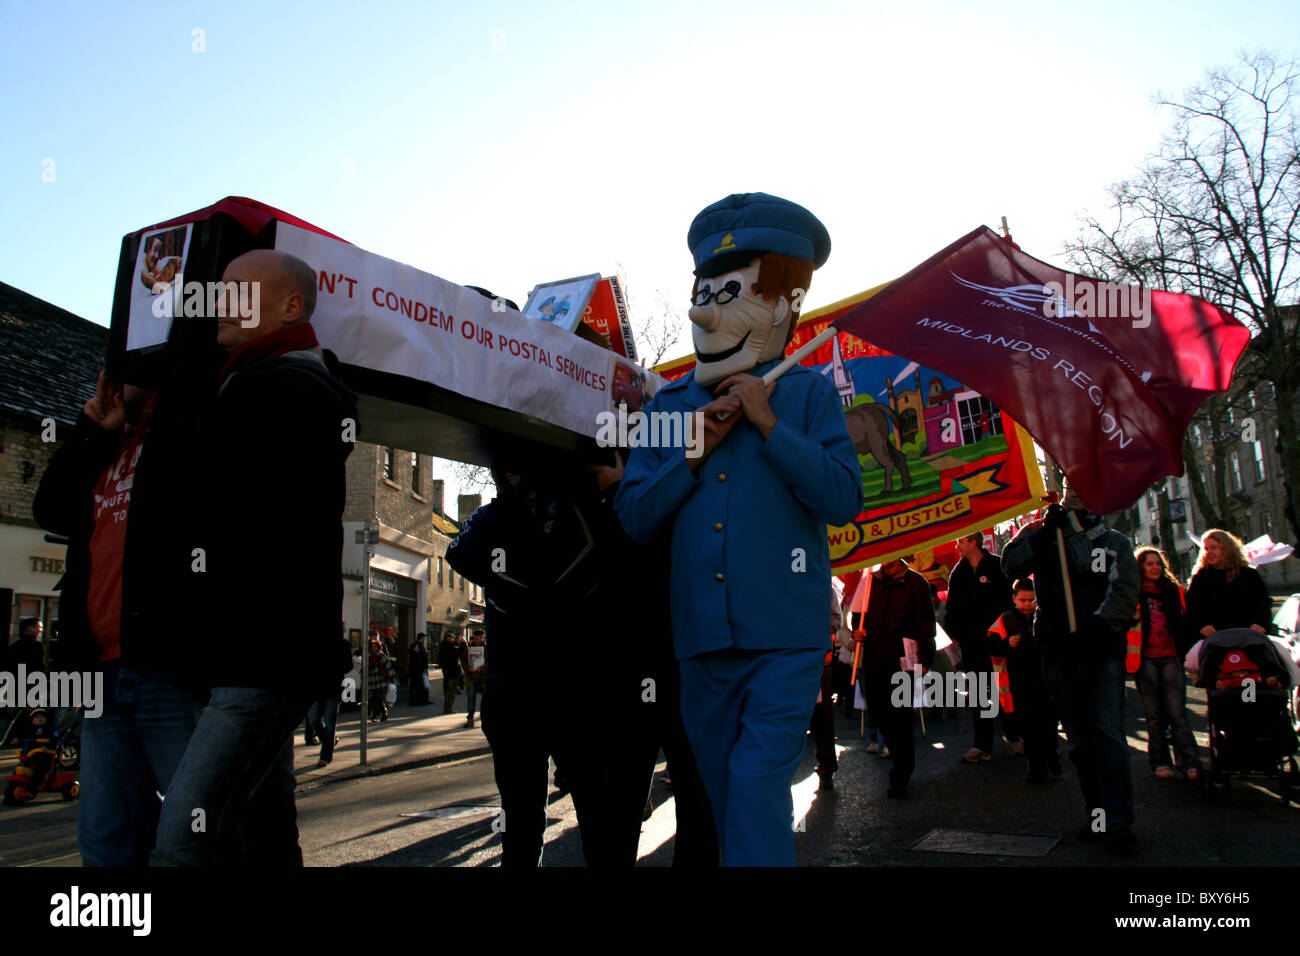 Coffin carried by protester and a protester dressed as Postman Pat at Witney england during the royal mail protest. - Stock Image